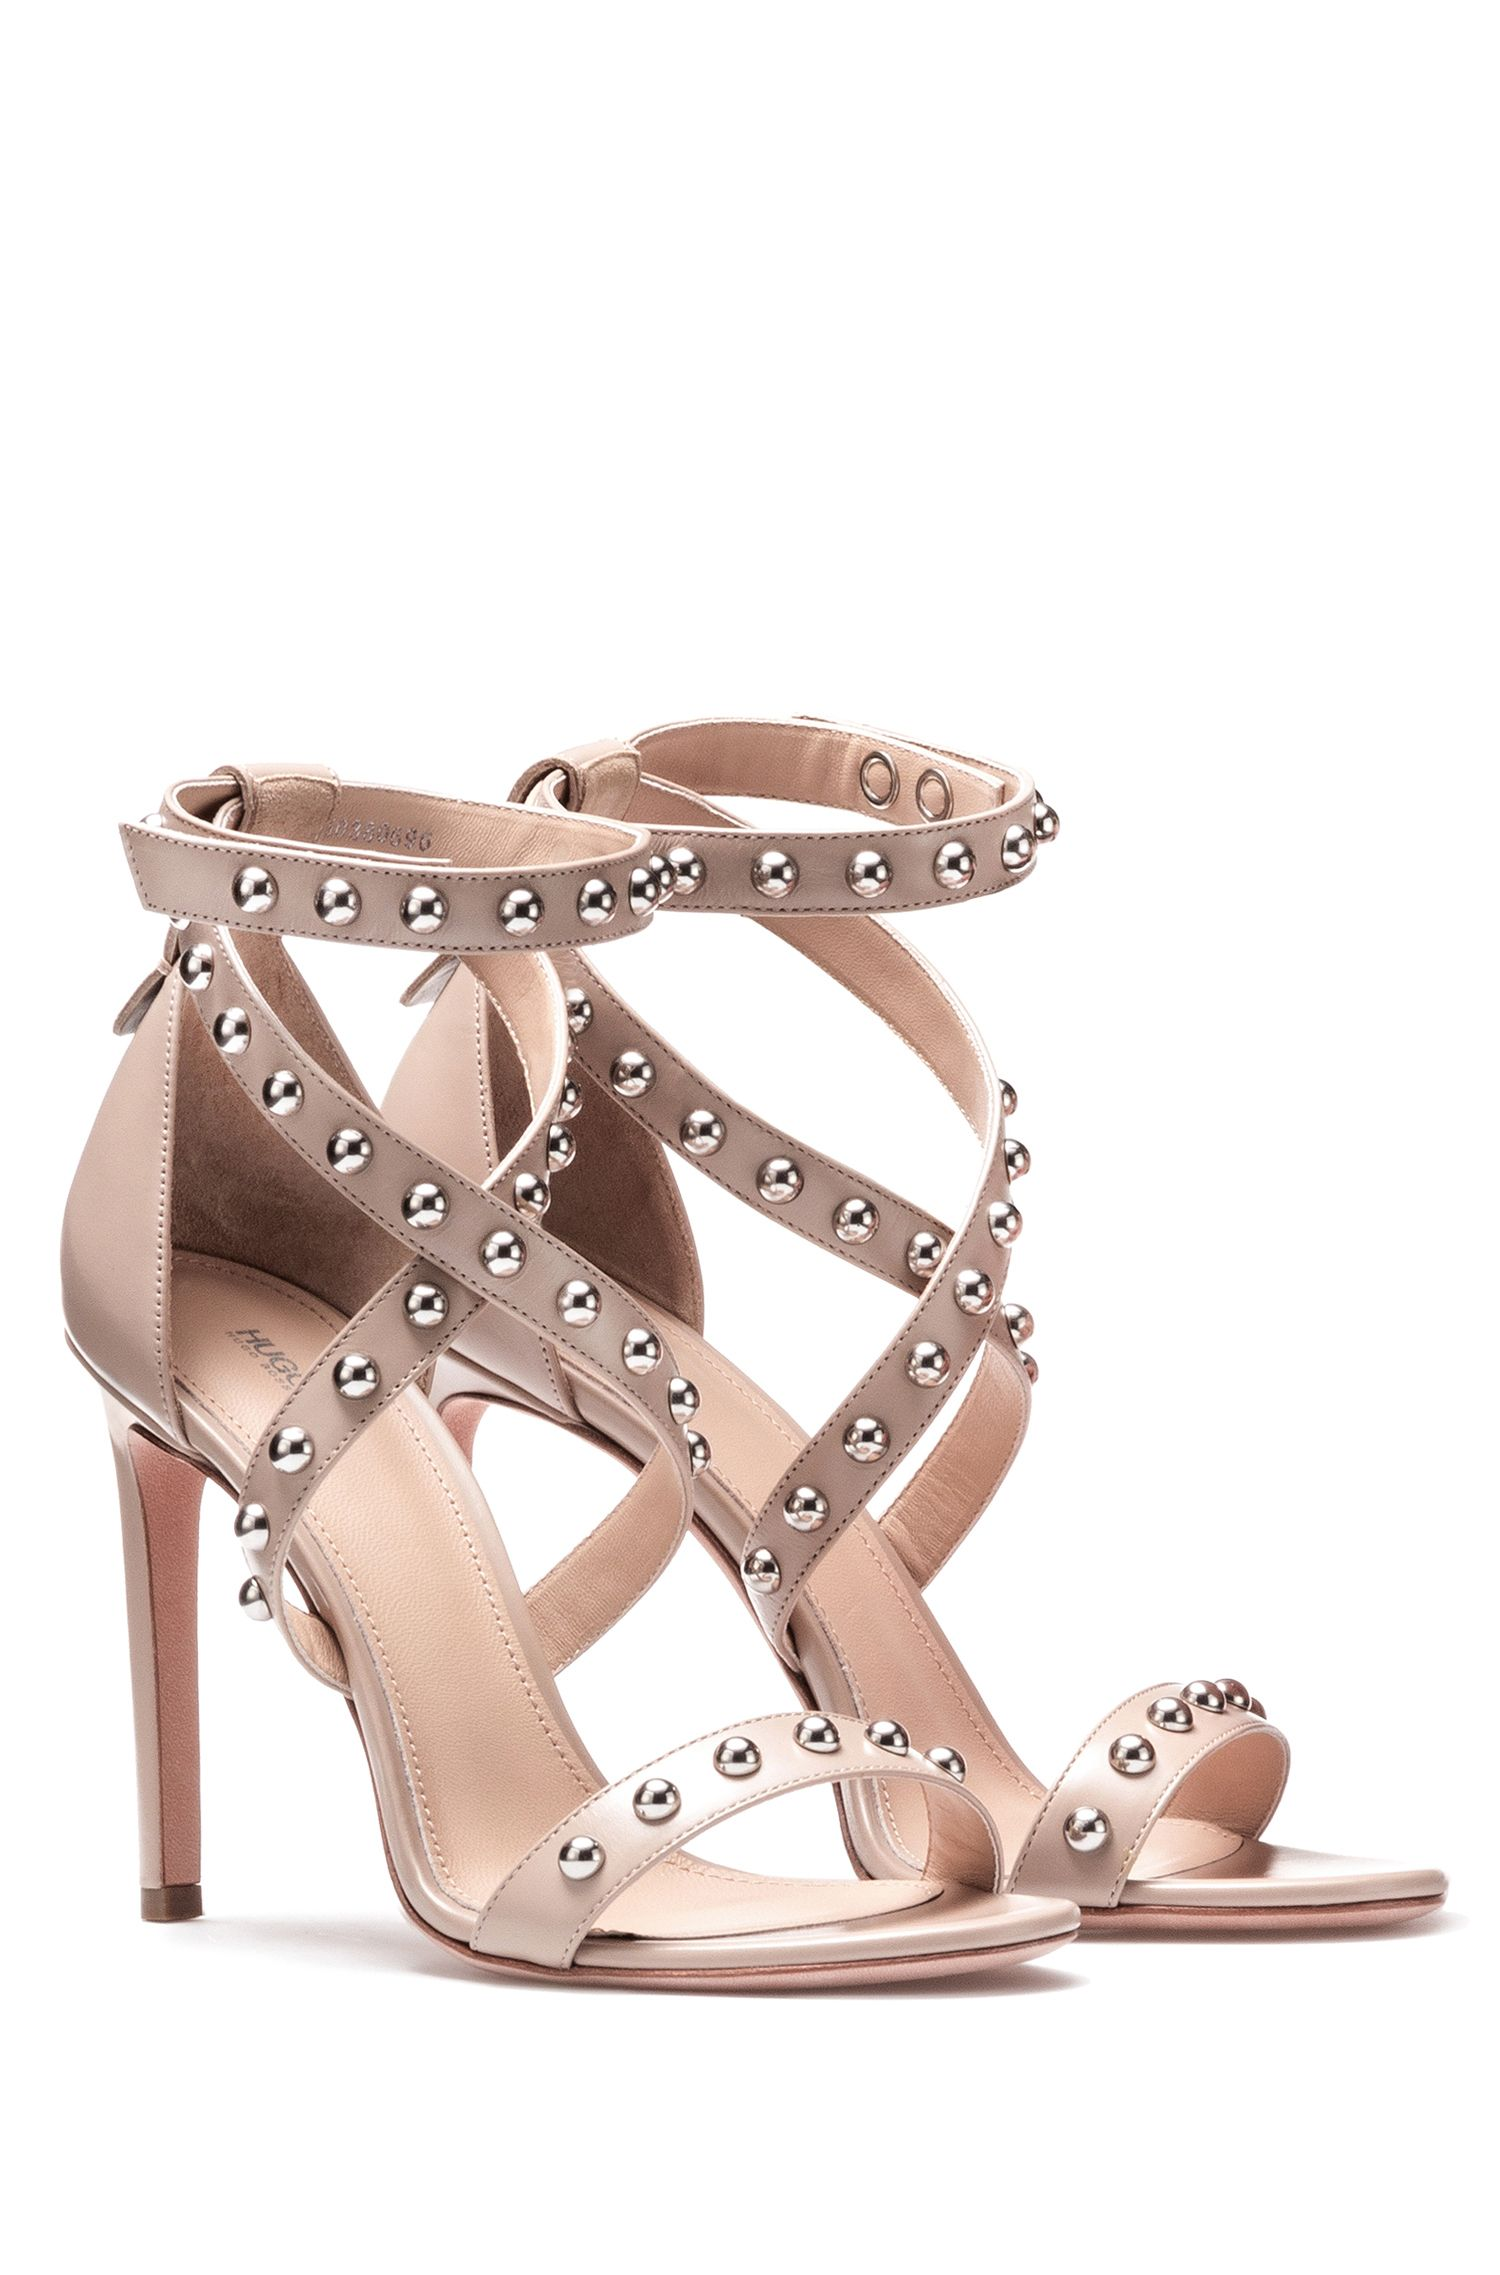 Strappy leather sandals with stud embellishments